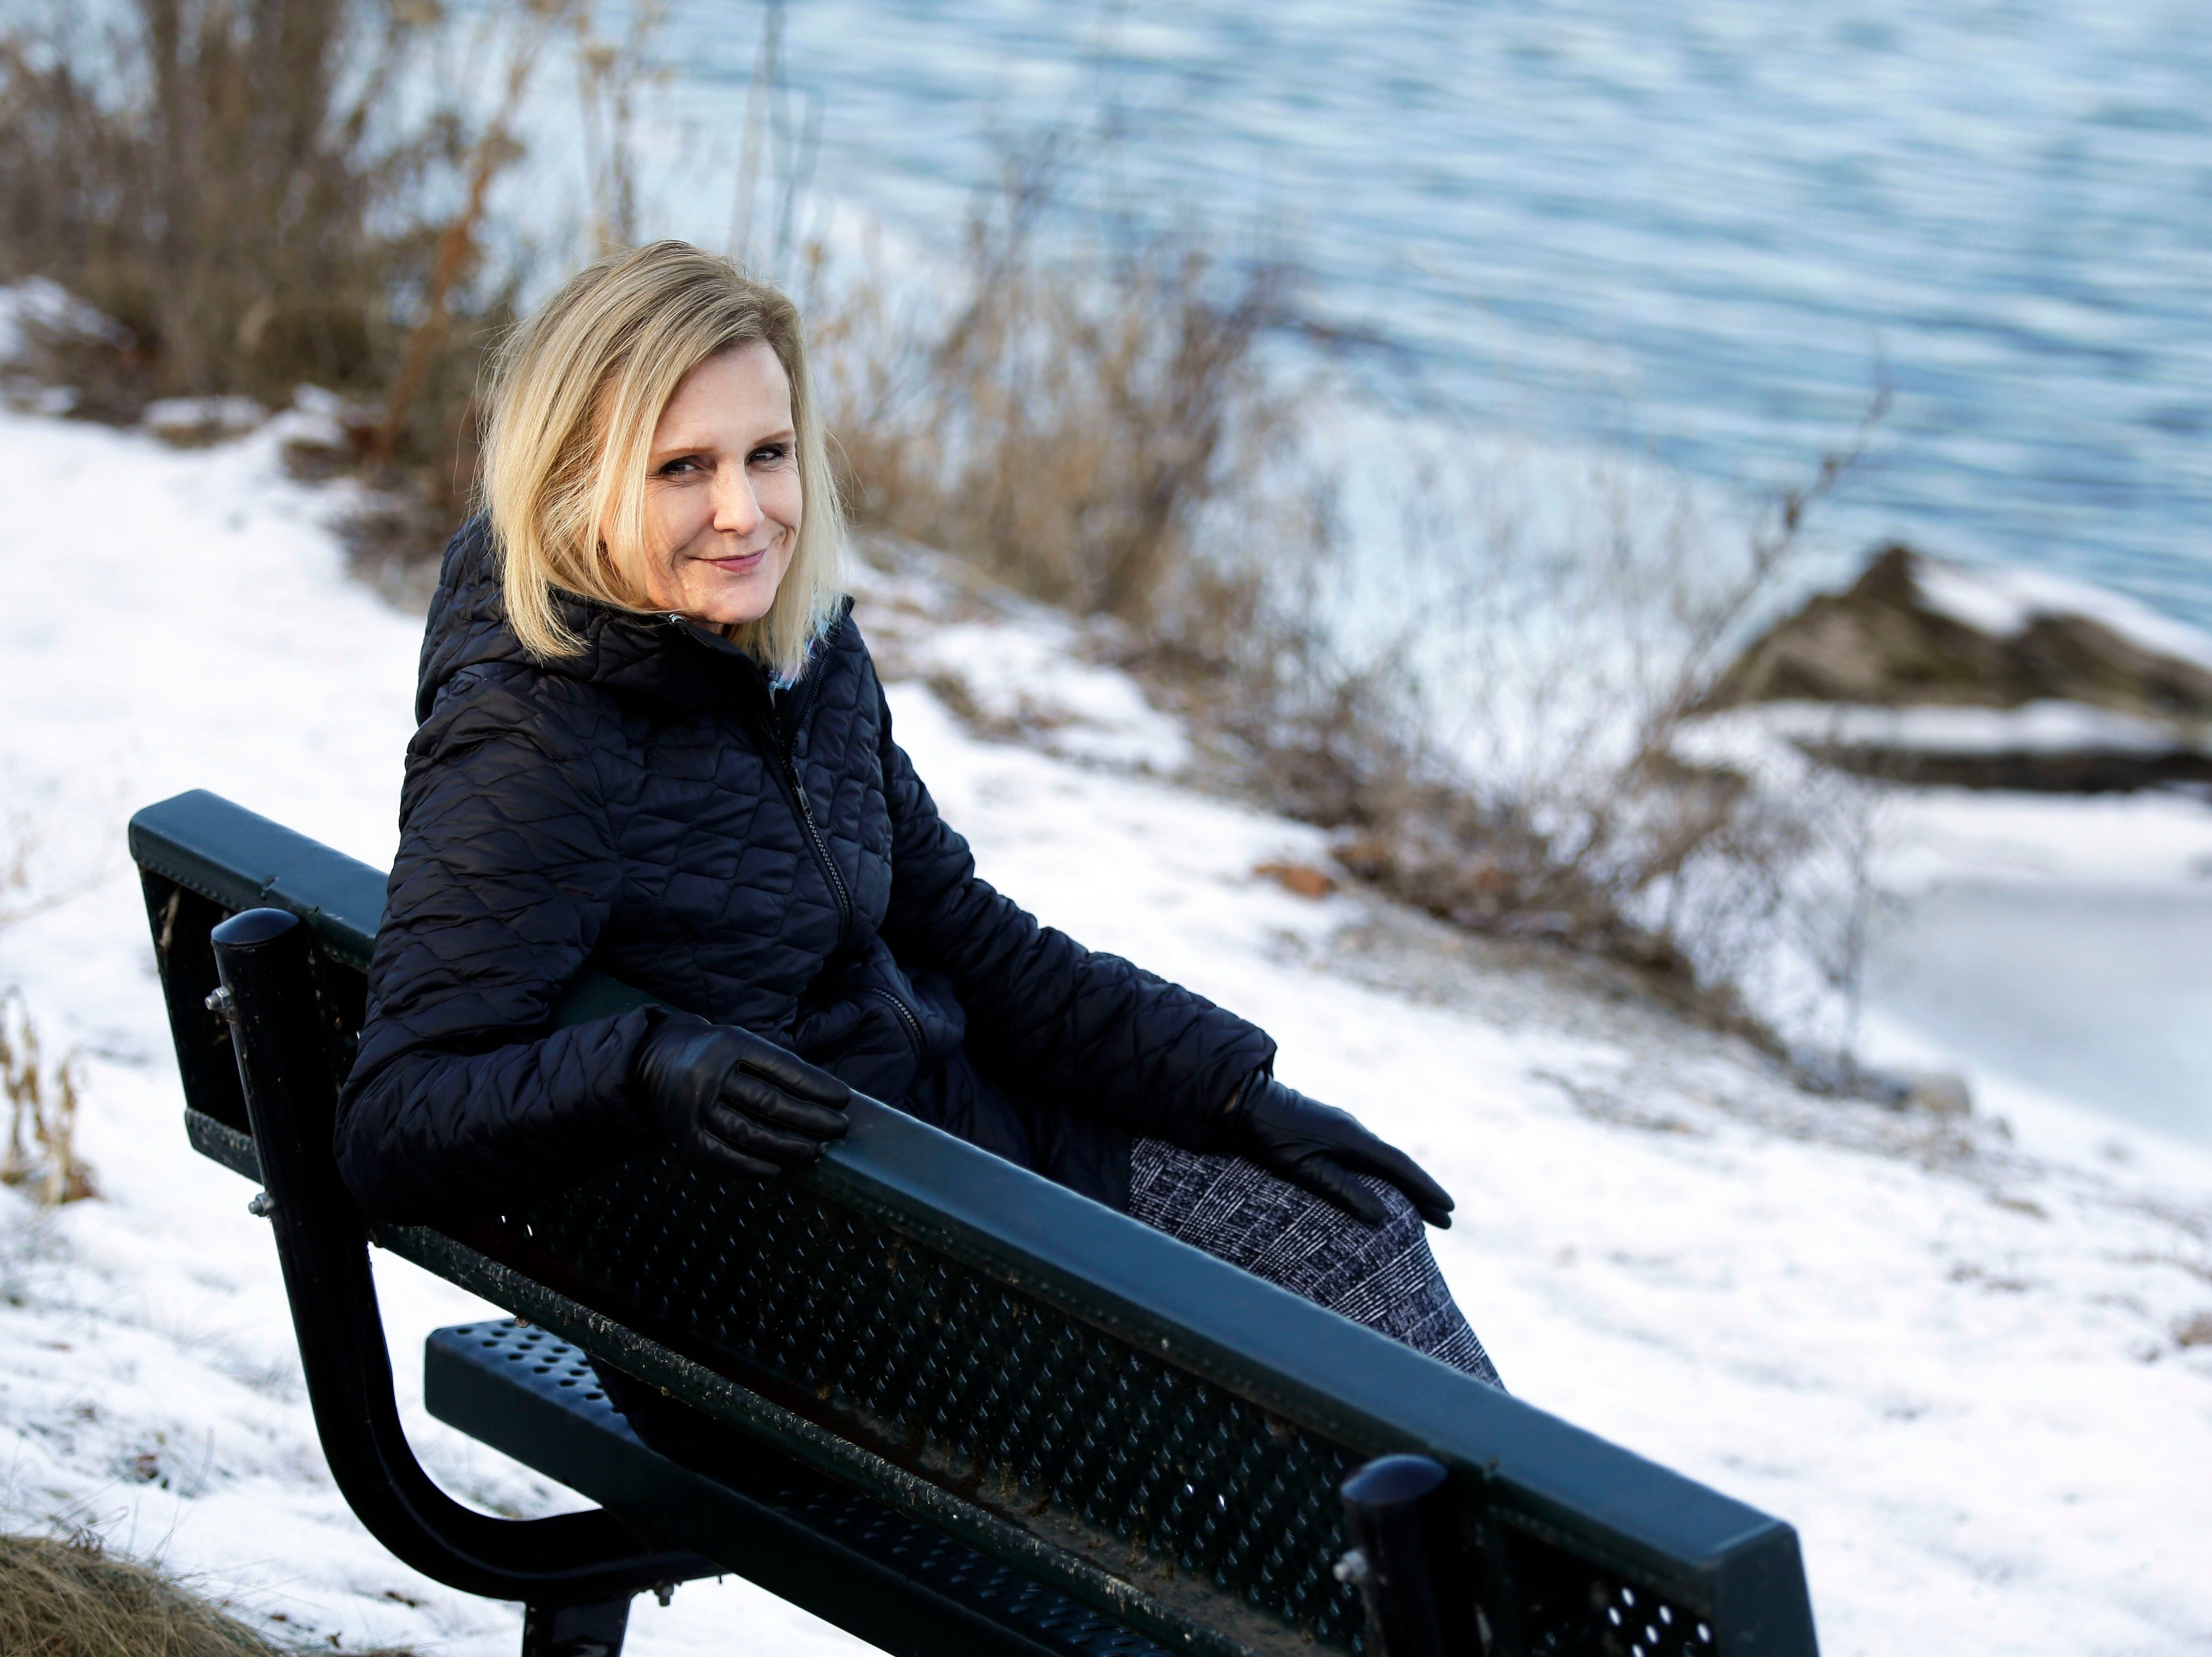 Lisa Hanneman sits on a memorial bench at the 1000 Islands Environmental Center near where her son, Nate, fished when he was younger. Nate died from brain cancer at 24.